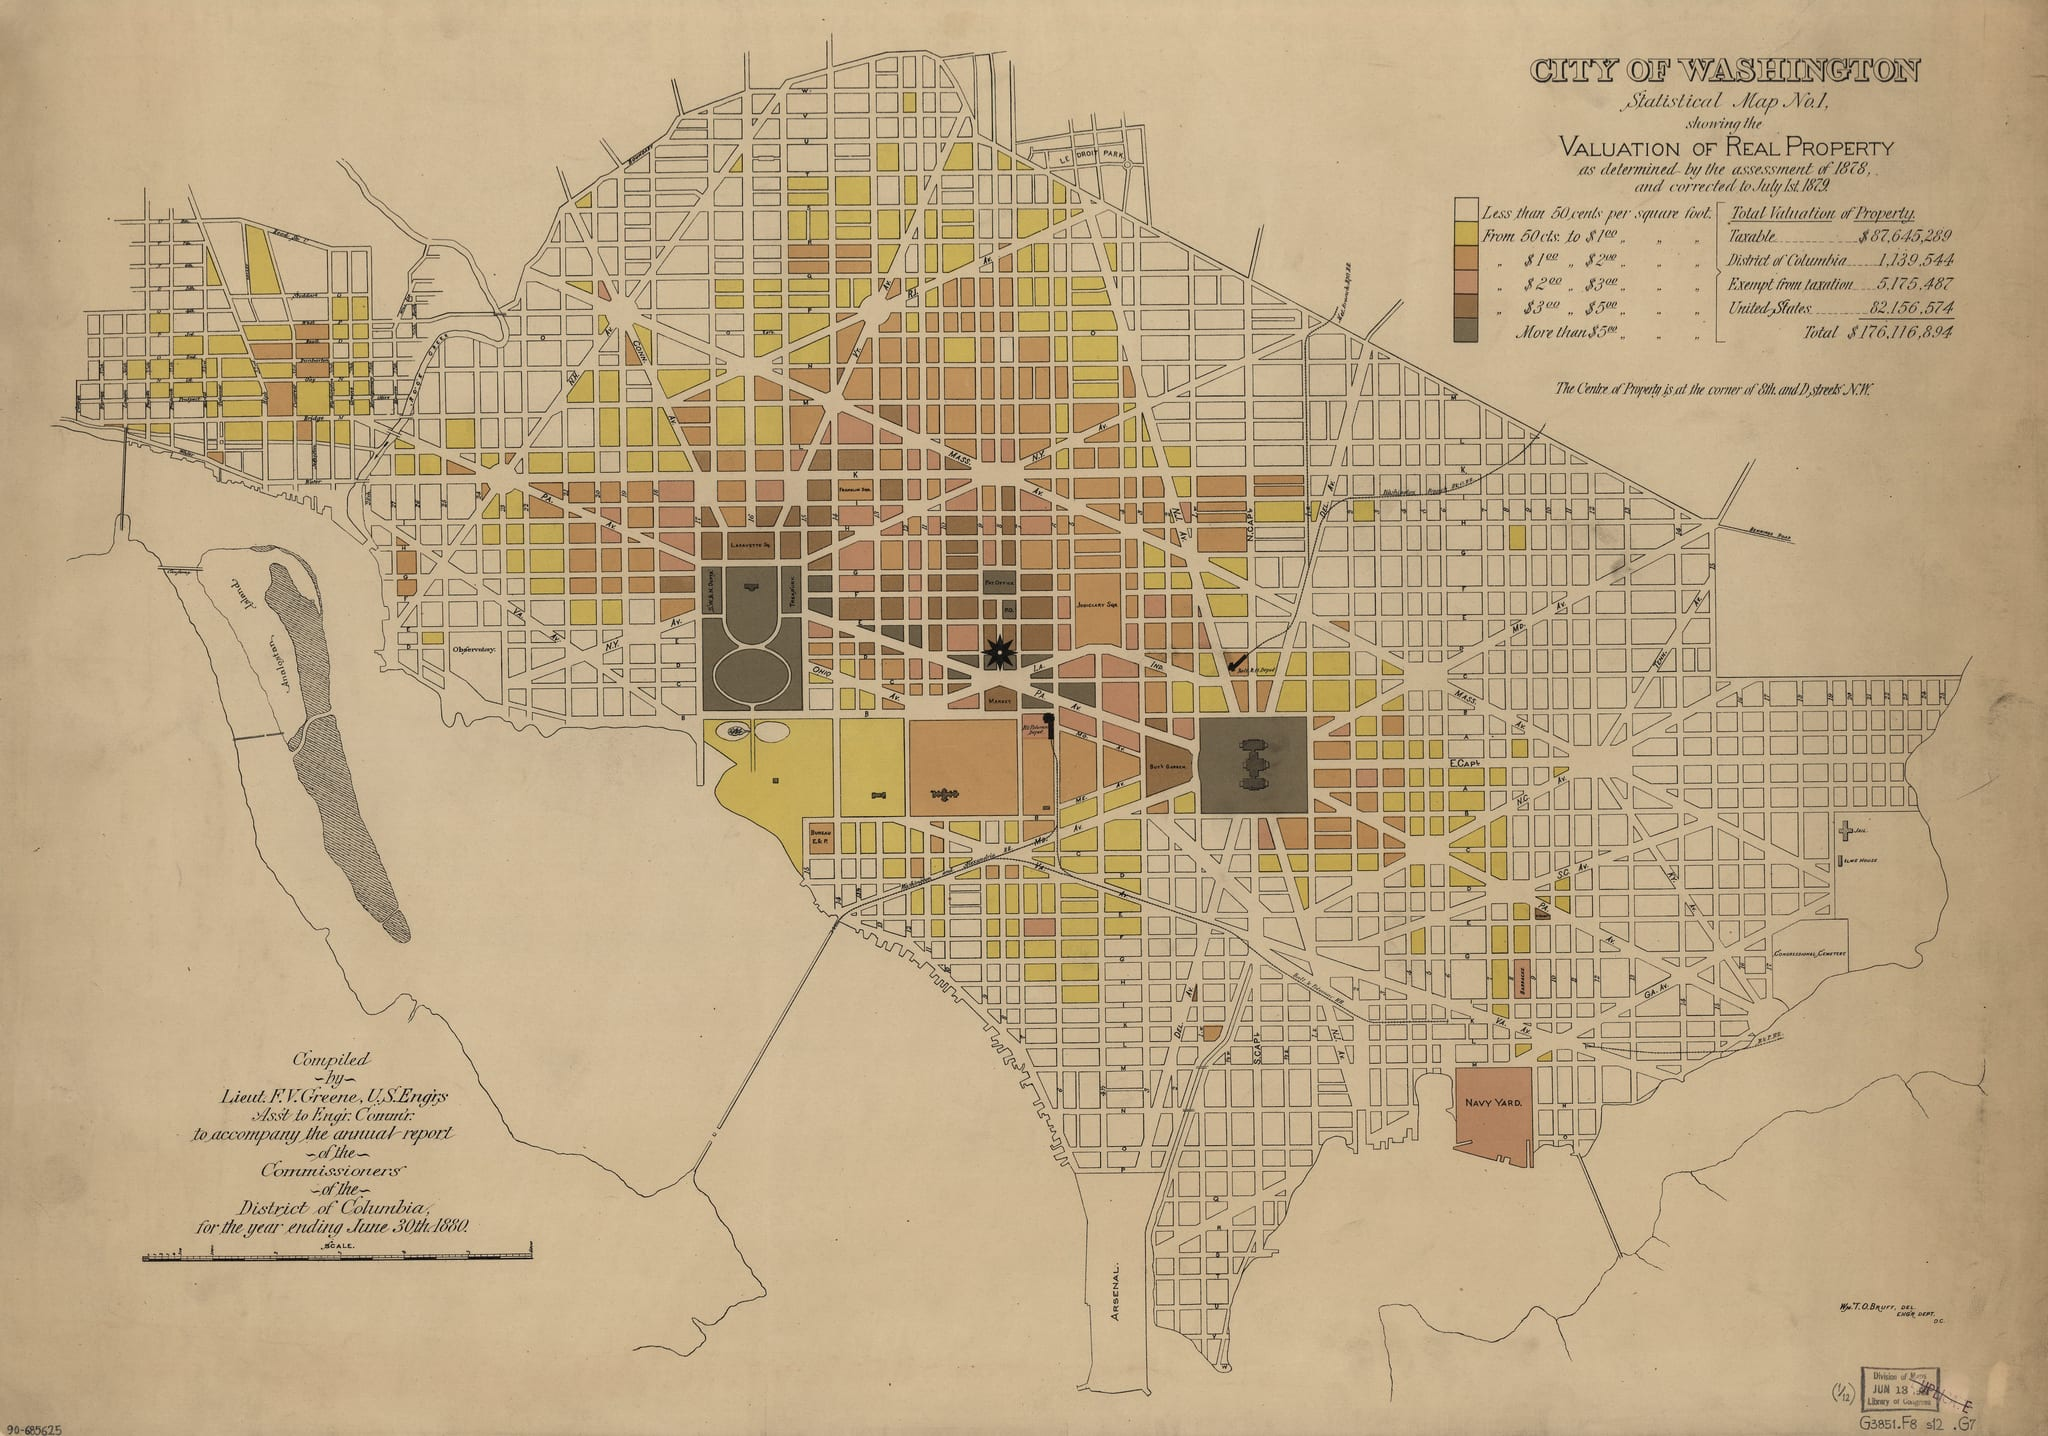 City of Washington Property Values Map From 1880